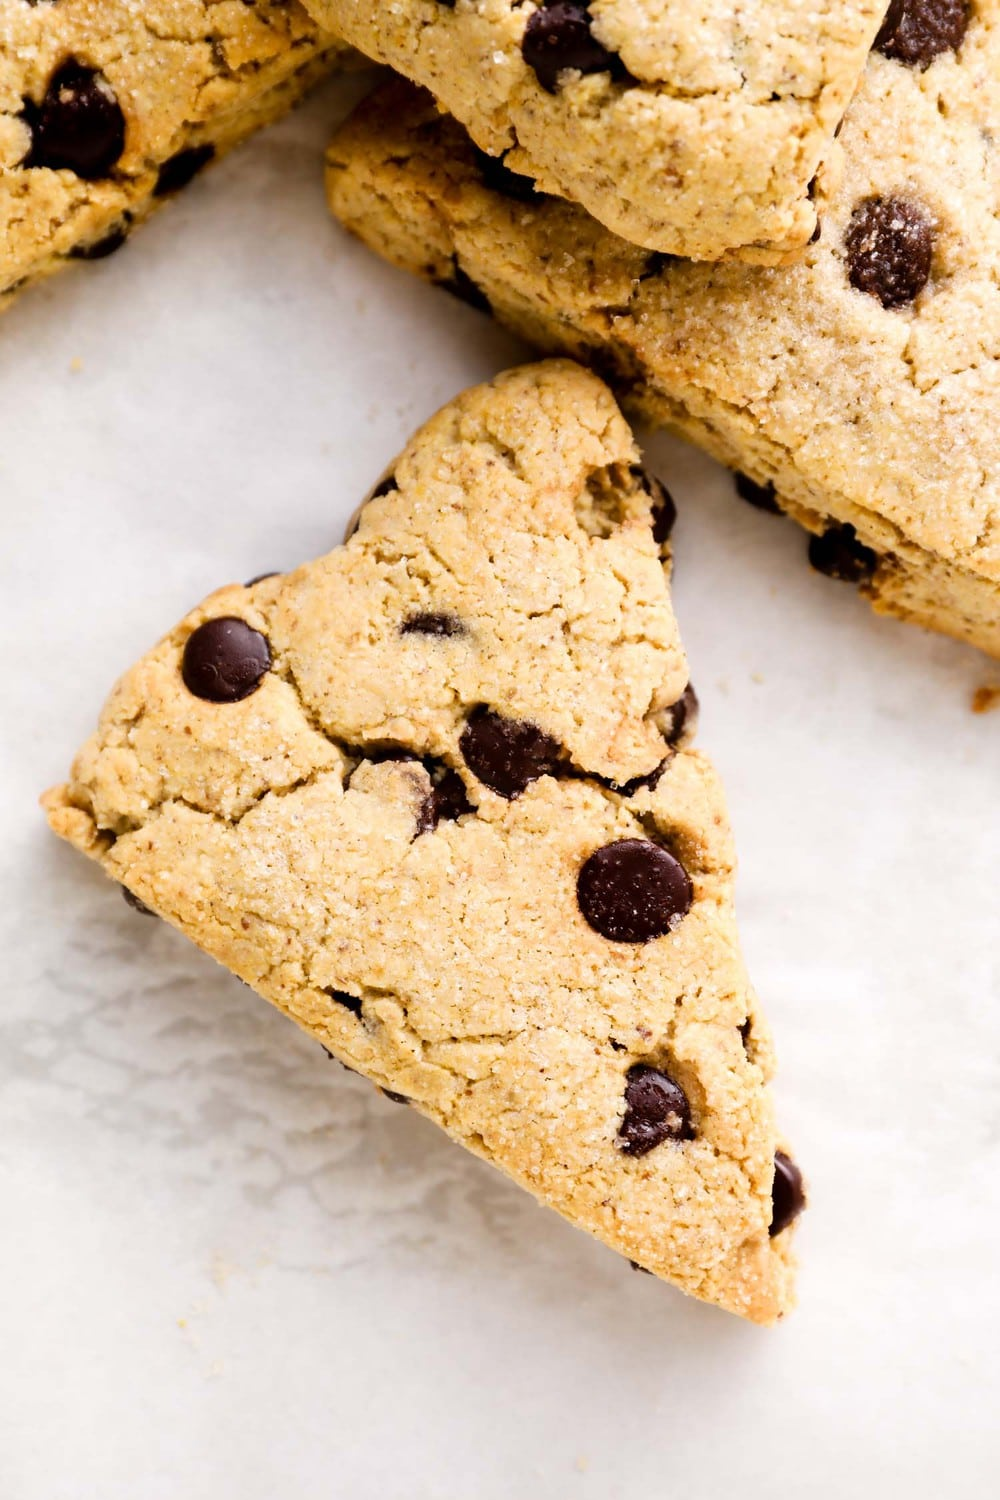 A Gluten Free Scone with chocolate chips.